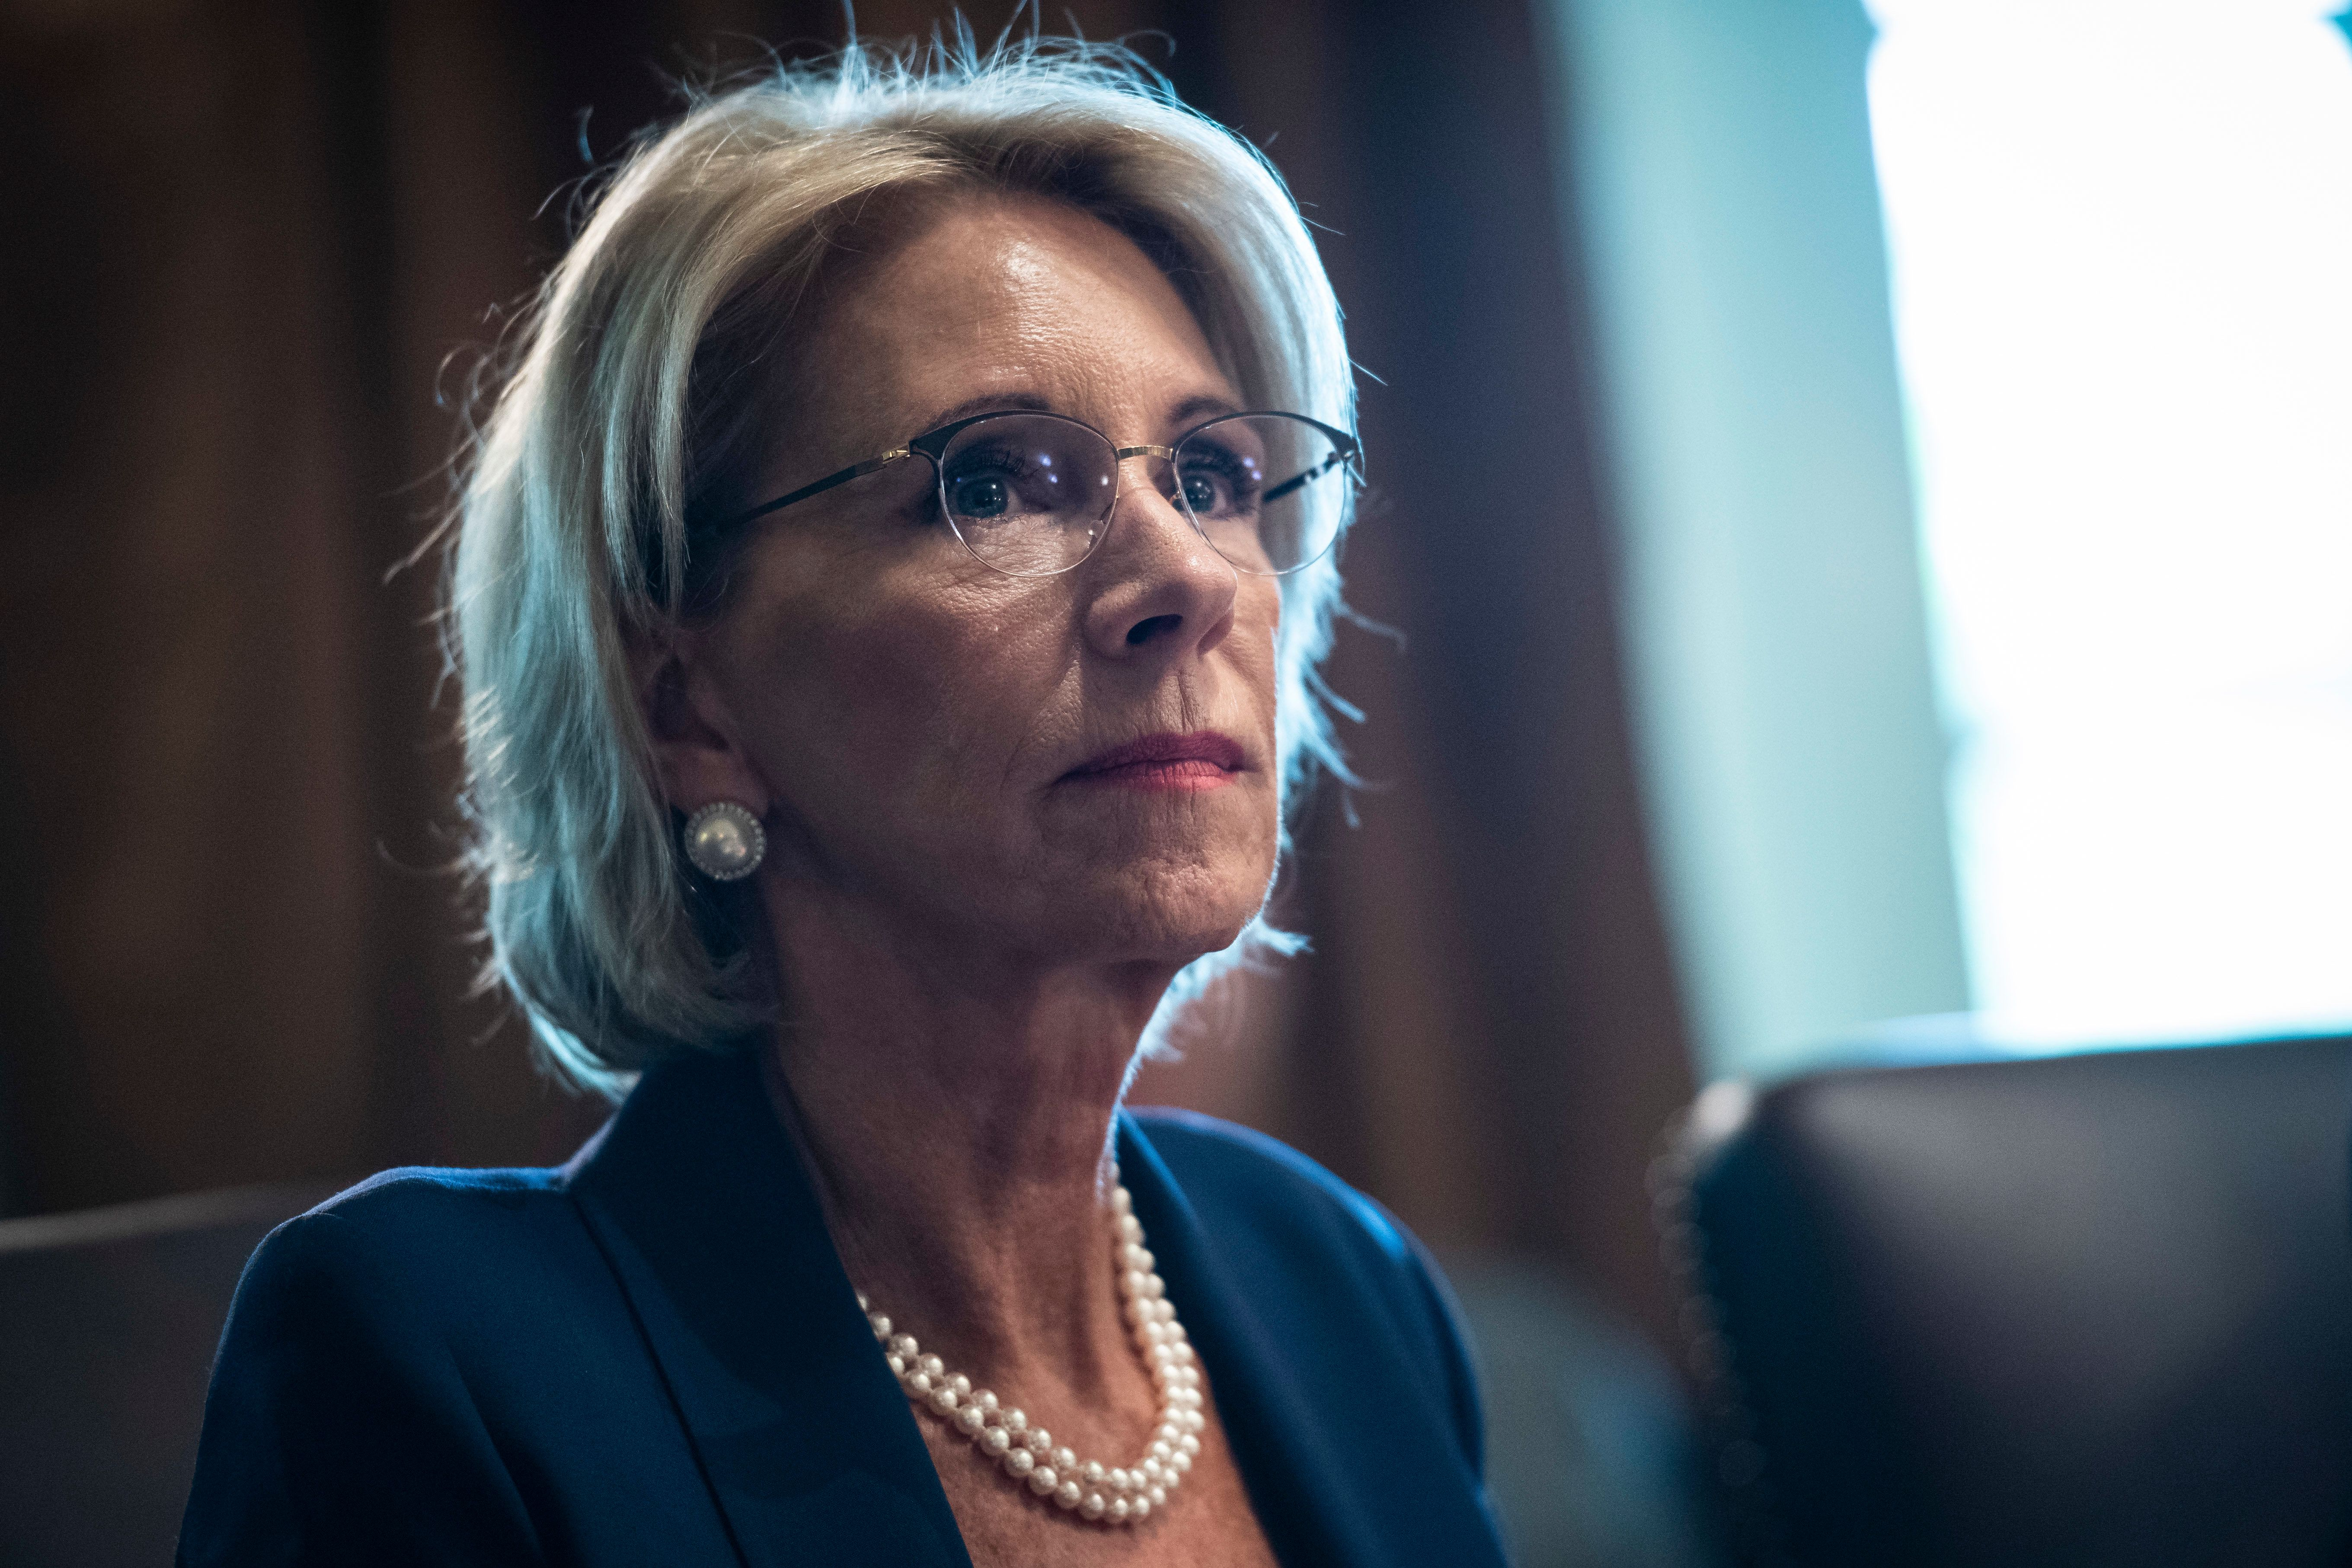 WASHINGTON, DC - AUGUST 16 : Secretary of Education Betsy DeVos listens as President Donald J. Trump speaks during a Cabinet meeting in the Cabinet Room of the White House on Thursday, Aug 16, 2018 in Washington, DC. (Photo by Jabin Botsford/The Washington Post via Getty Images)